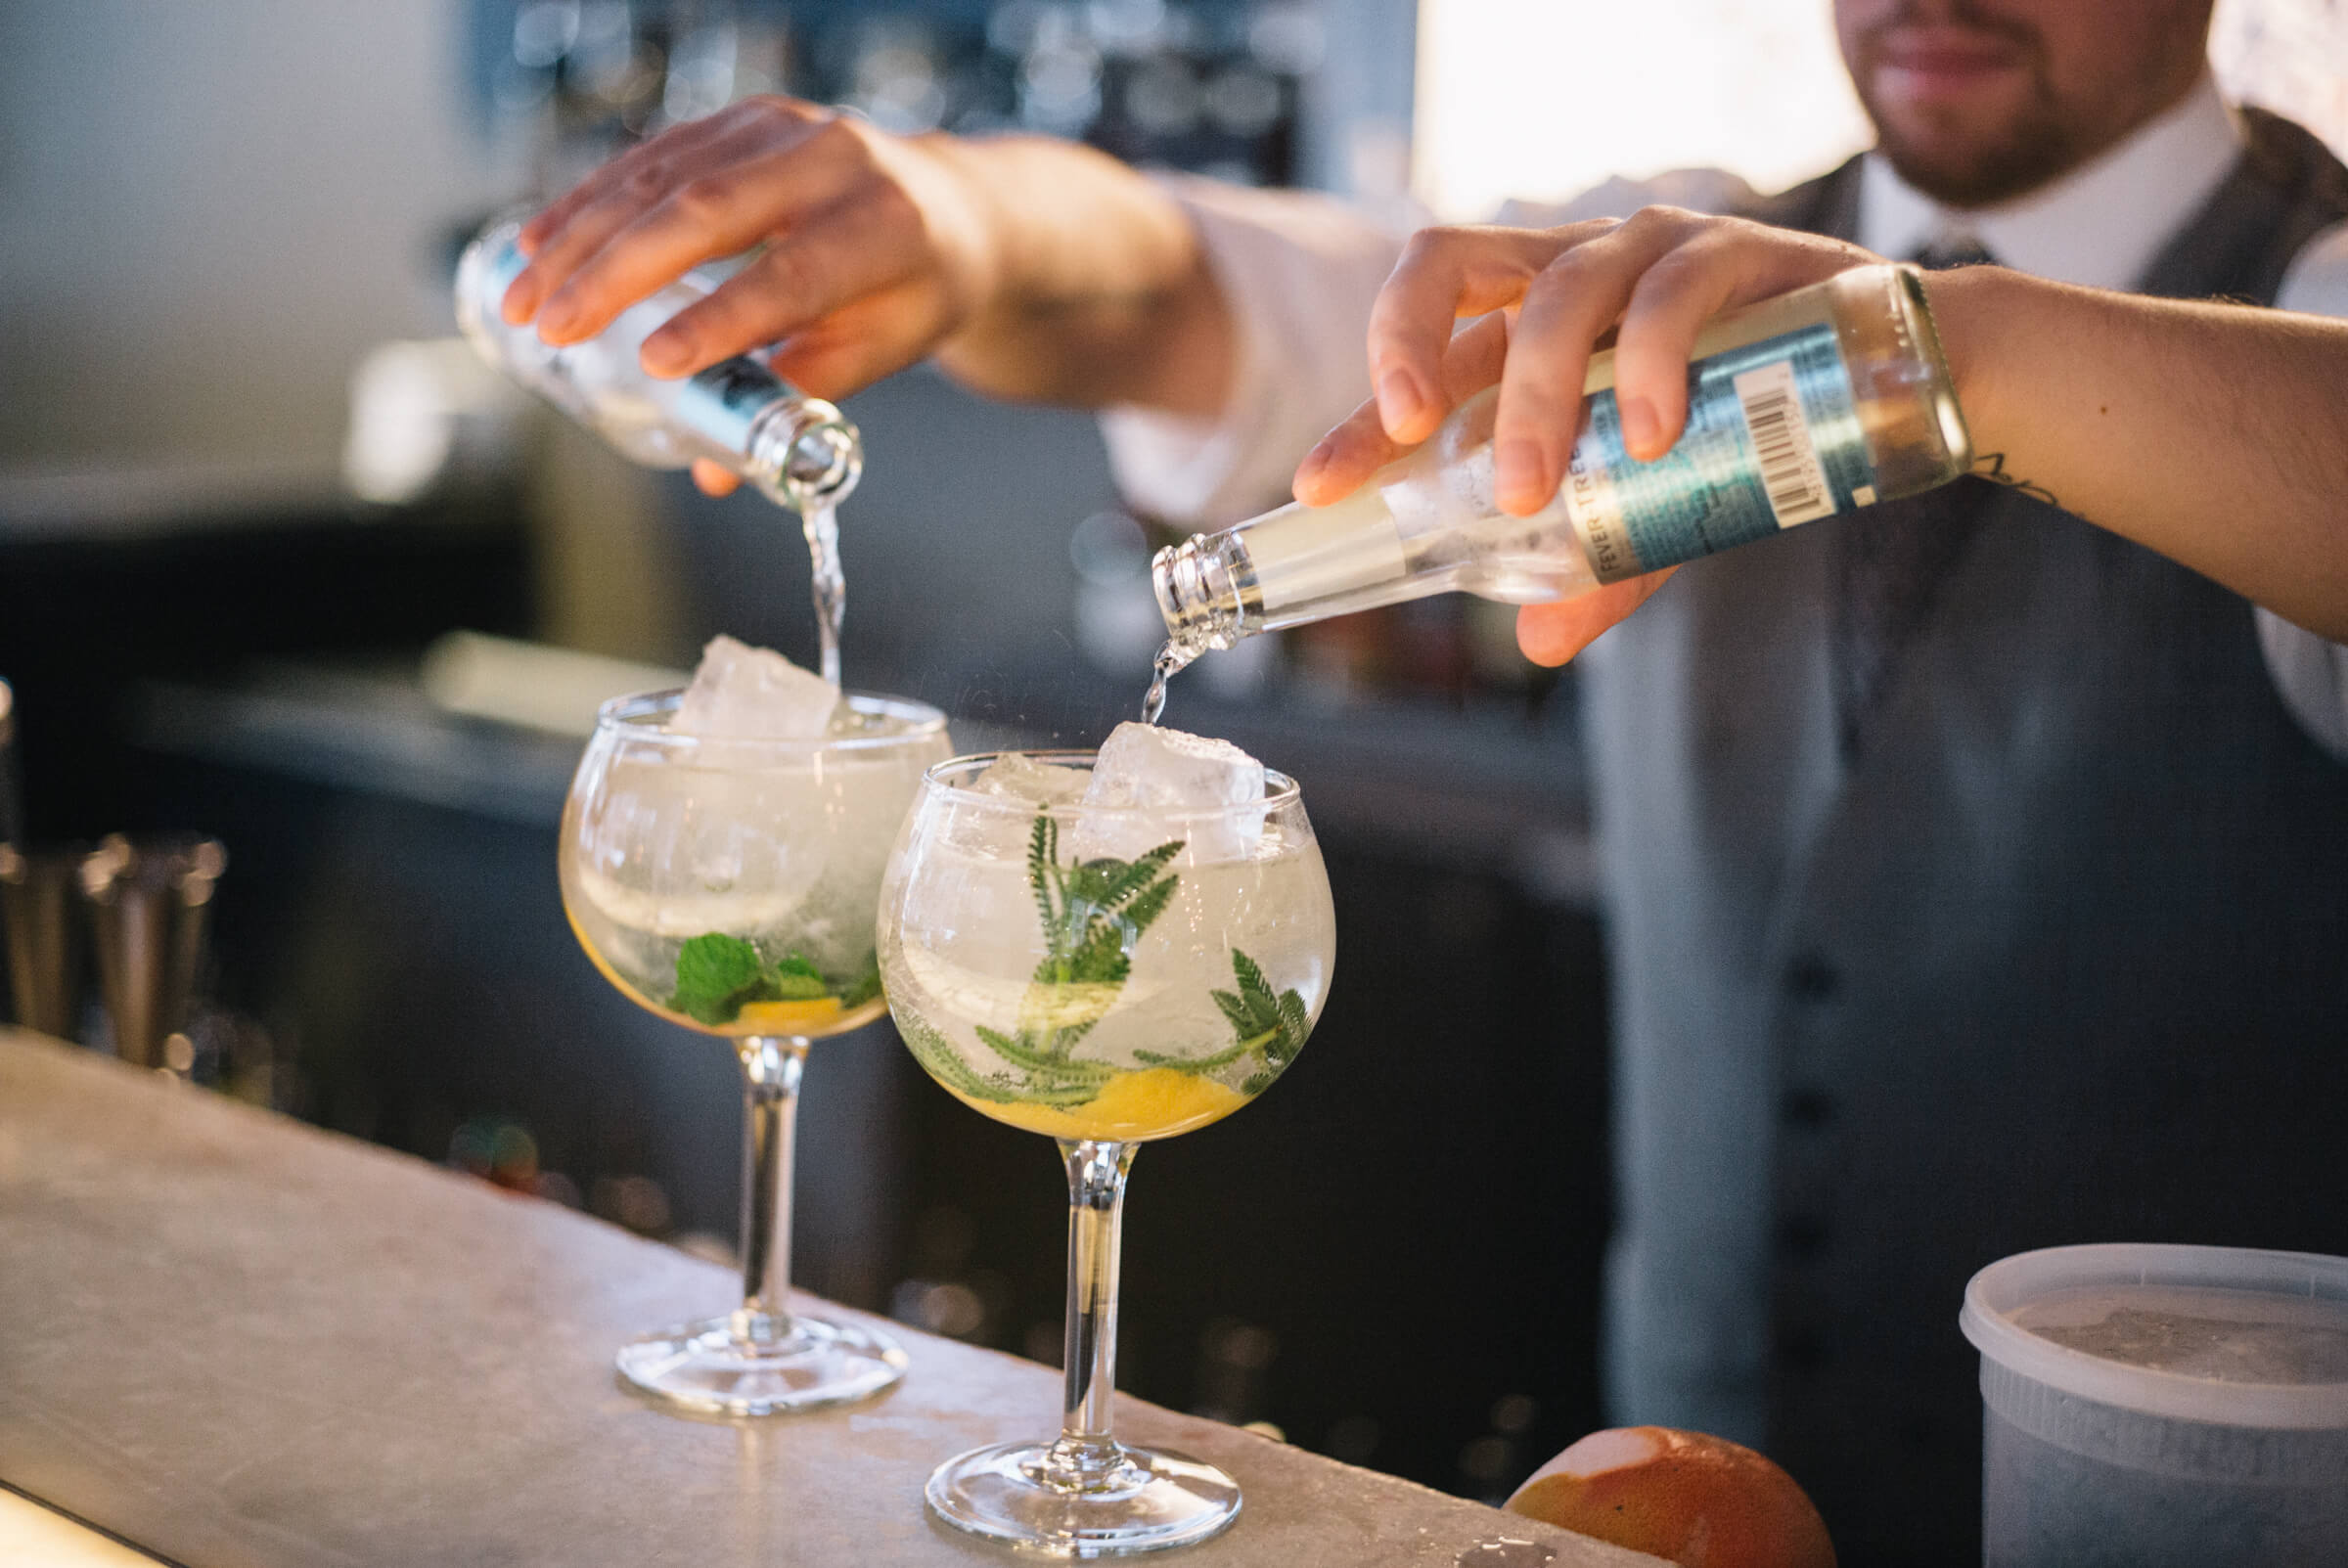 The Taste Edit at Sable Kitchen and bar Spanish-style gin and tonic in Chicago adding fever-tree tonic water